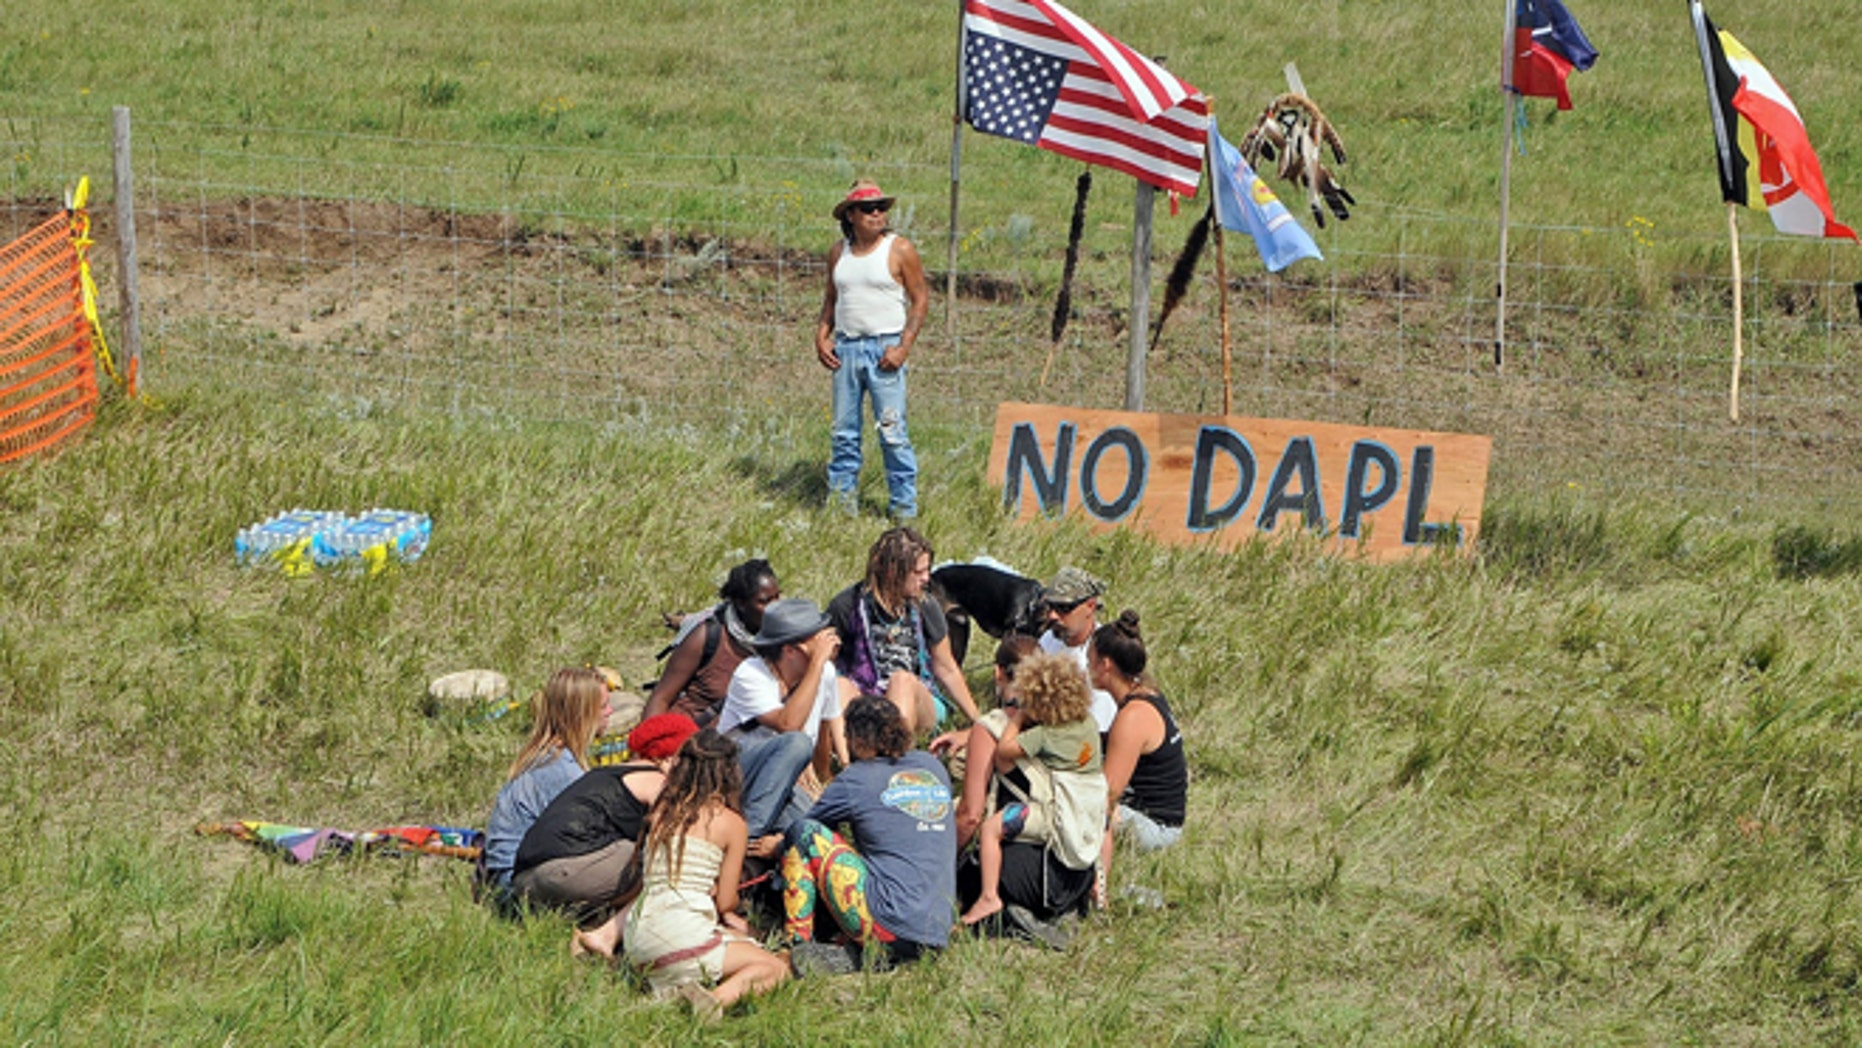 Bill Left Hand, of McLaughlin, South Dakota, stands next to a sign at the site of a protest Friday, Aug. 12, 2016, against construction of the Dakota Access Pipeline that will cross the Missouri River in Morton County.